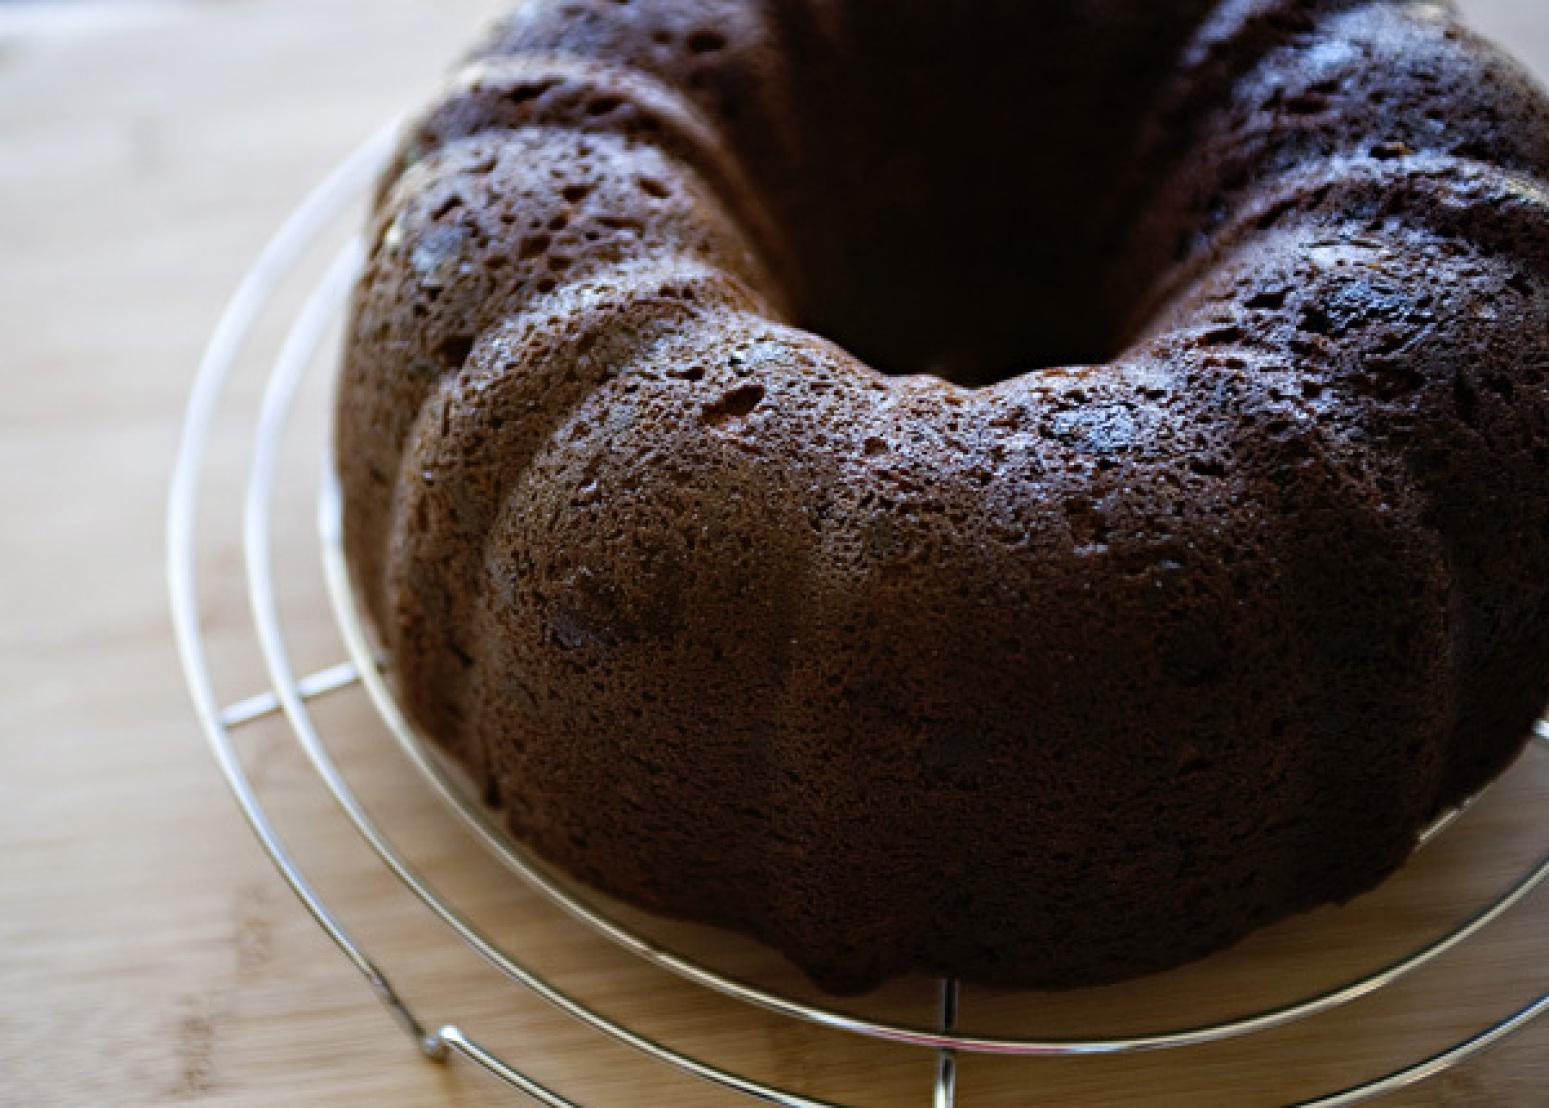 Karen's Chocolate Kahlua Cake Recipe